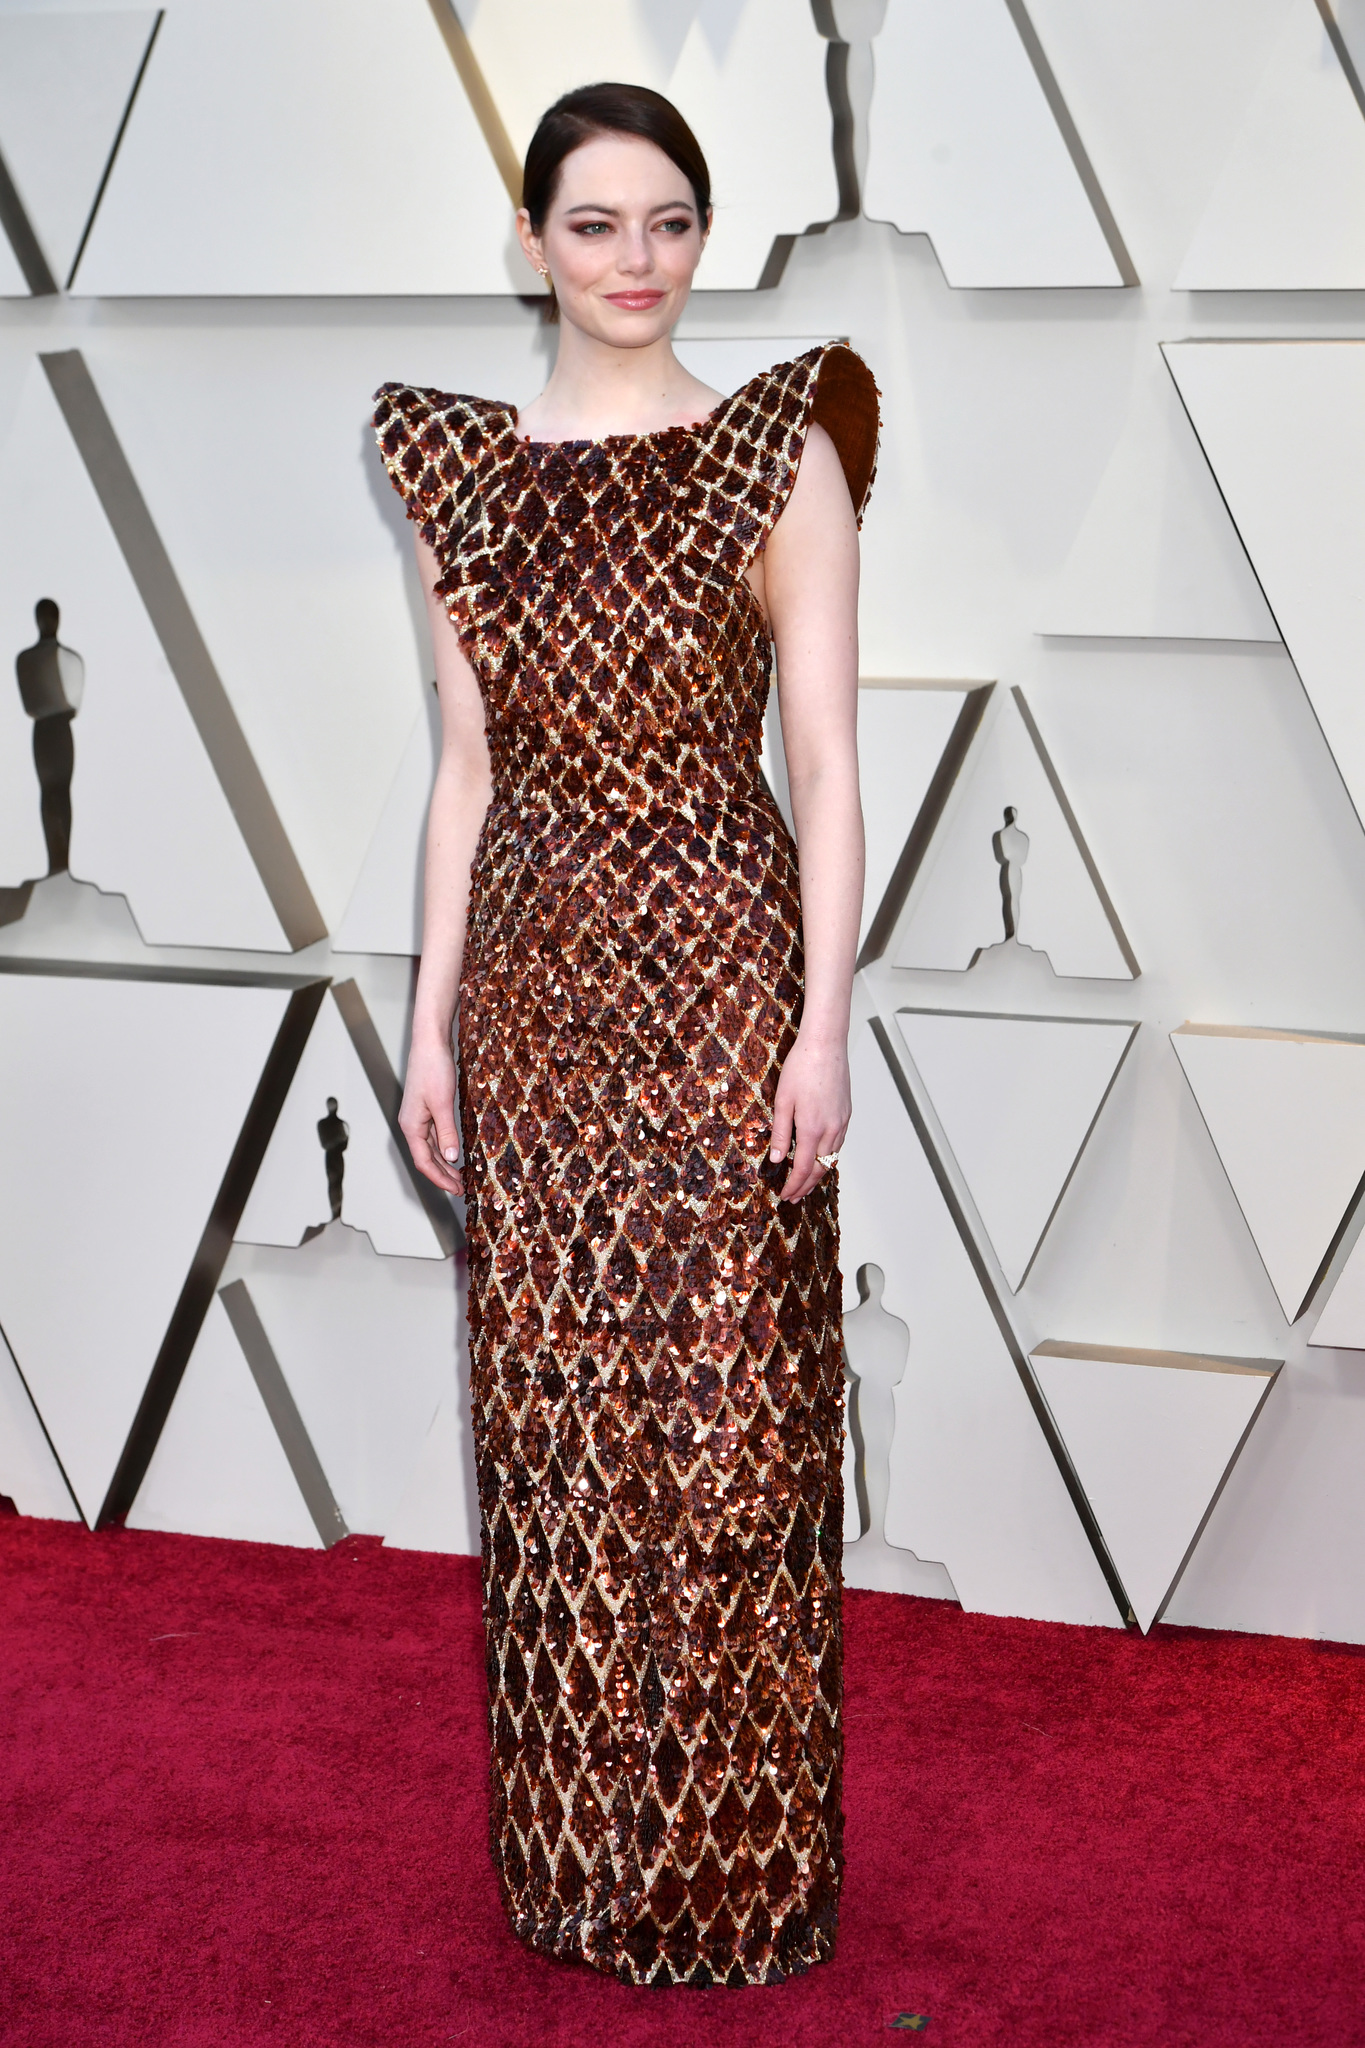 Emma Stone at an event for The Oscars (2019)